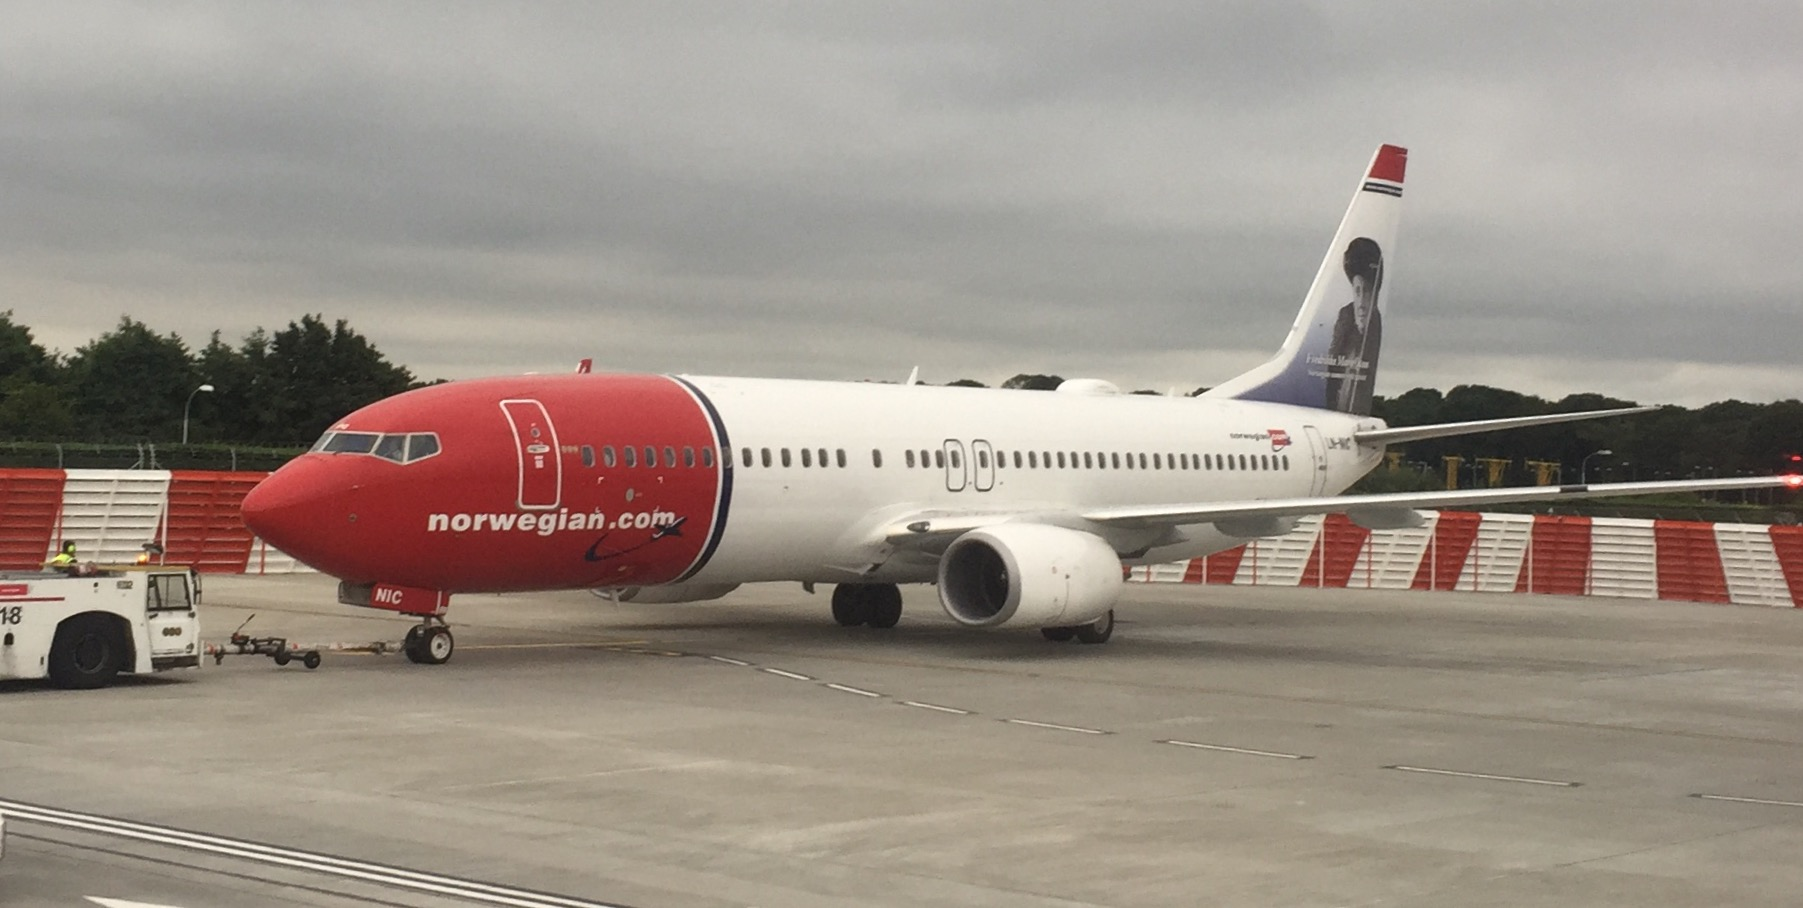 And just because I like the way Boeing 737s look in Norwegian's livery, here is the neighbouring Boeing 737-800 spotted through the window